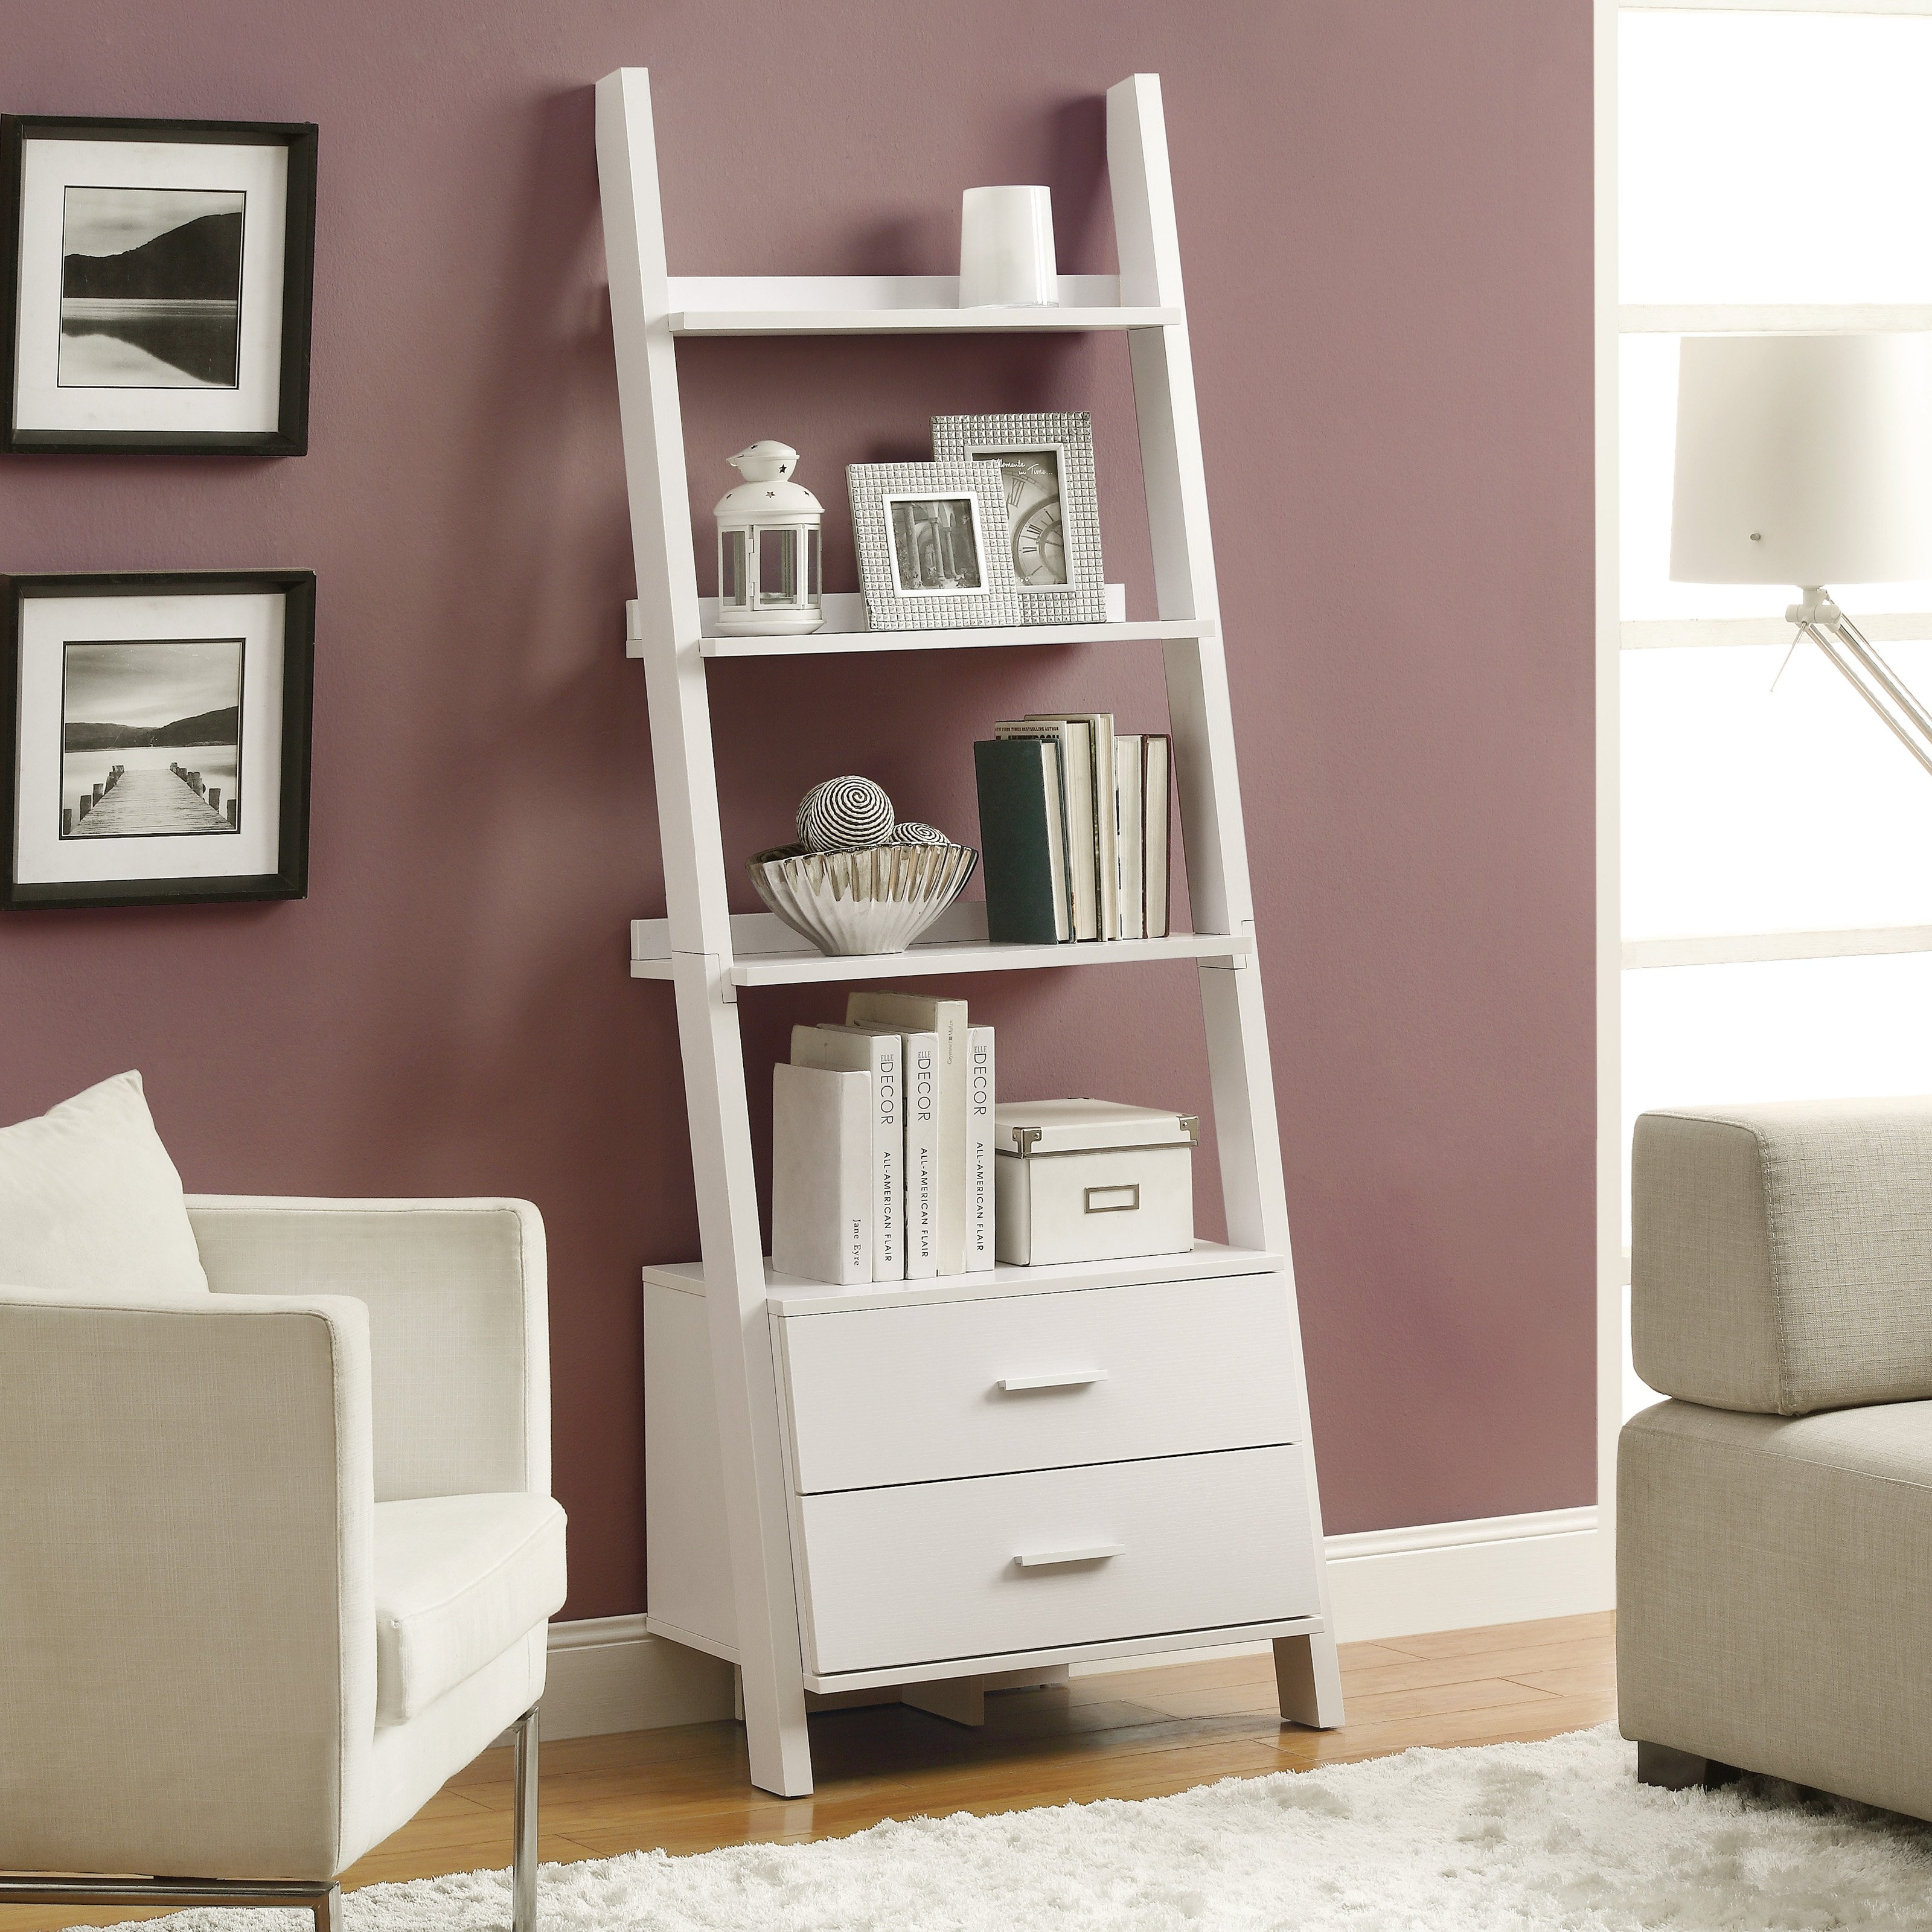 Monarch Bookcase 69h White Ladder With 2 Storage Drawers Regarding White Ladder Shelf (View 6 of 15)